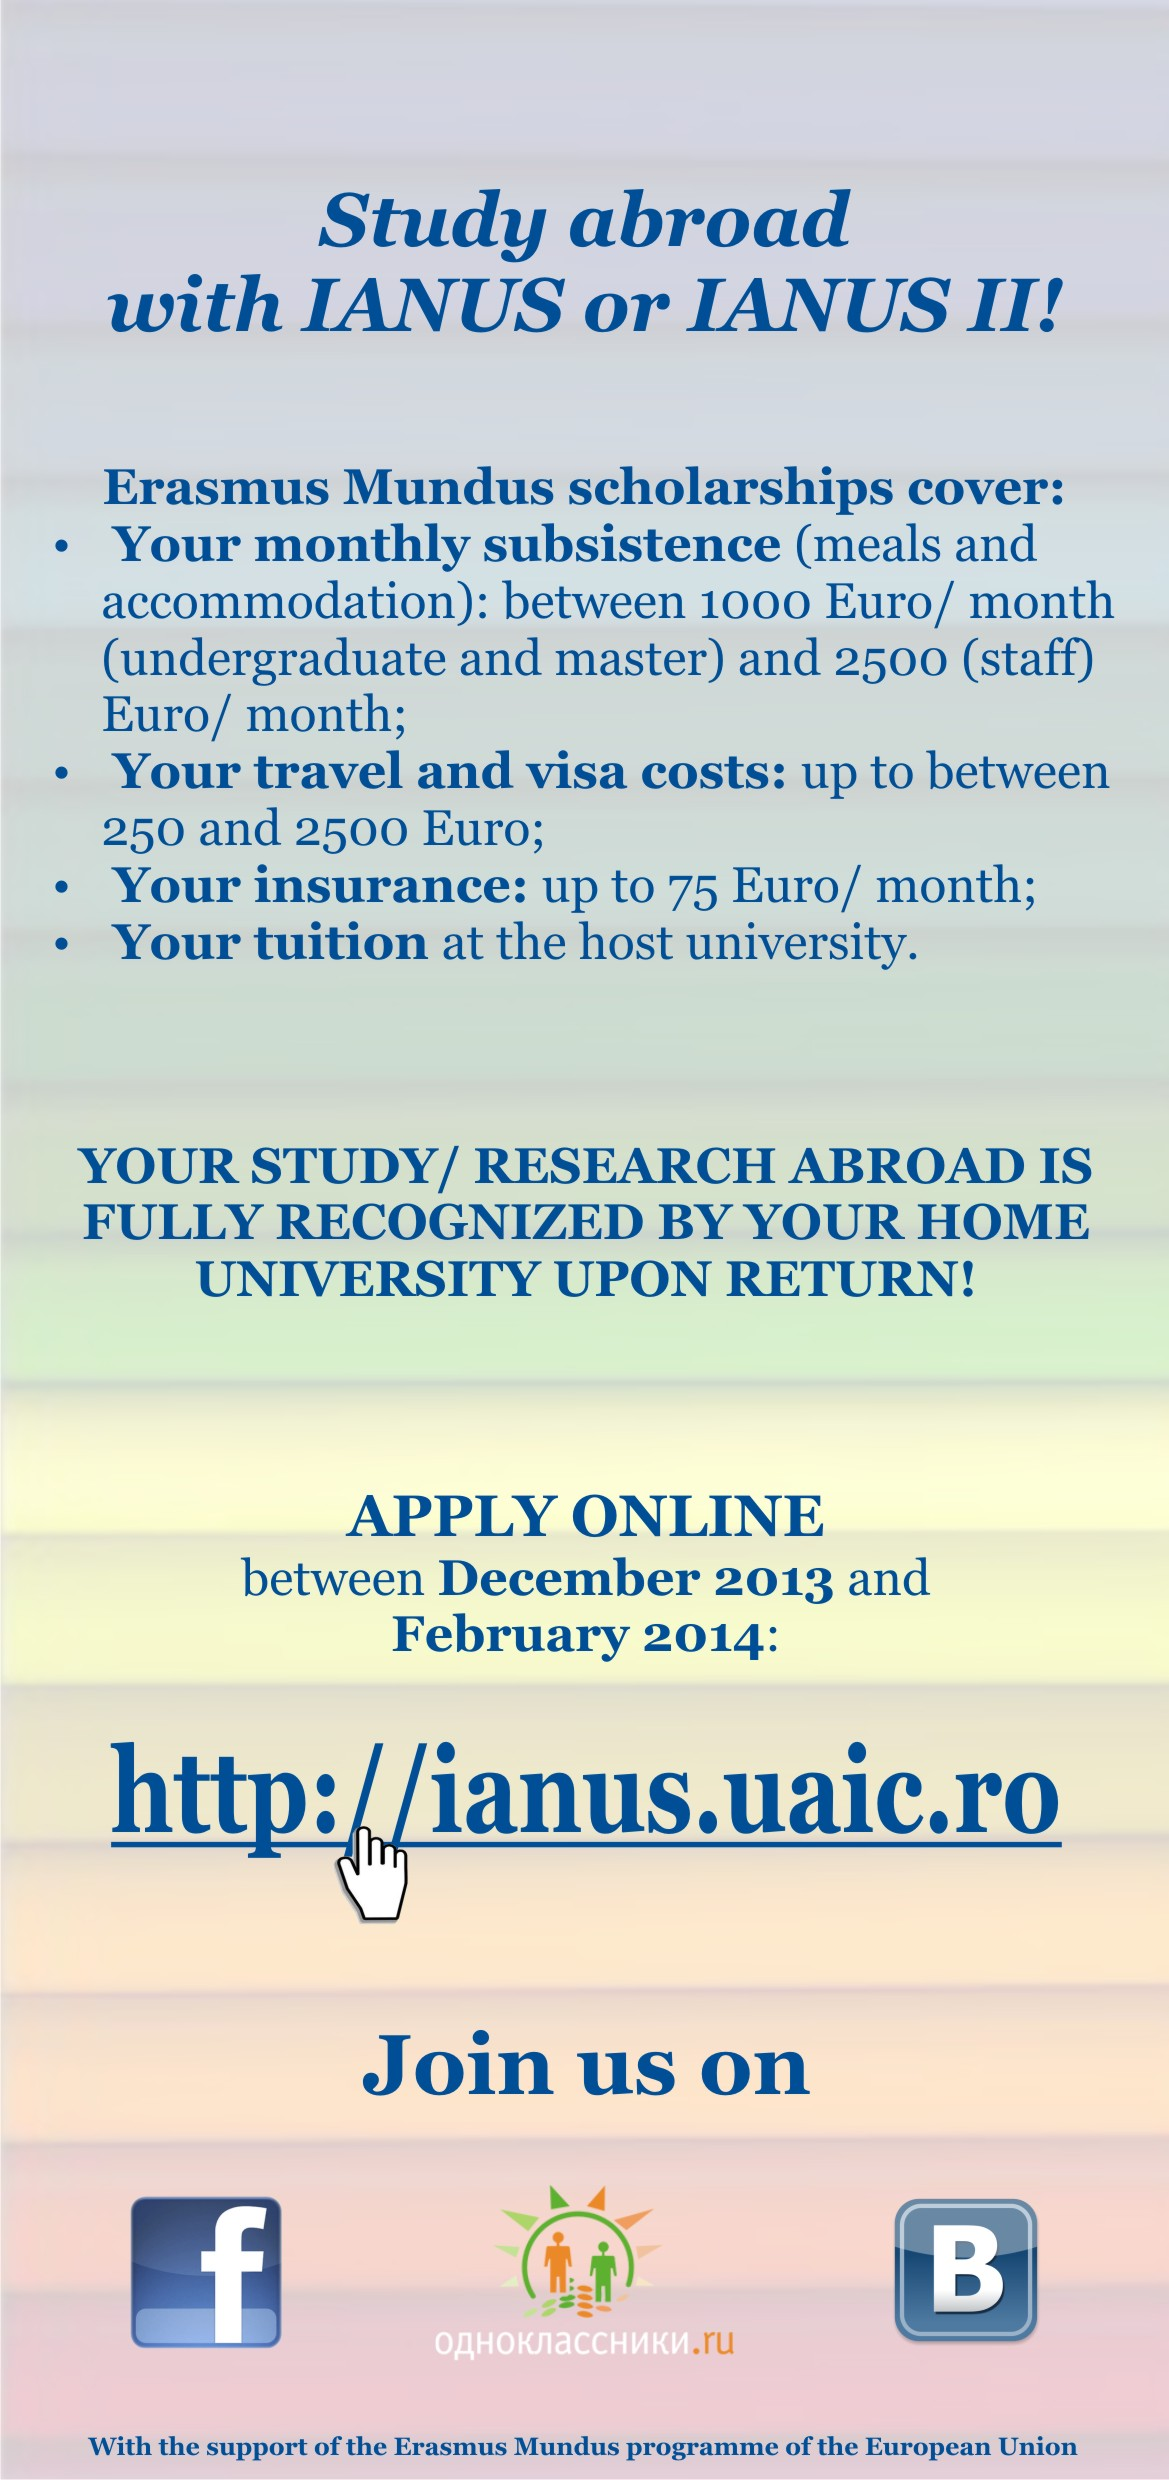 The poster for the IANUS first Call for Participation